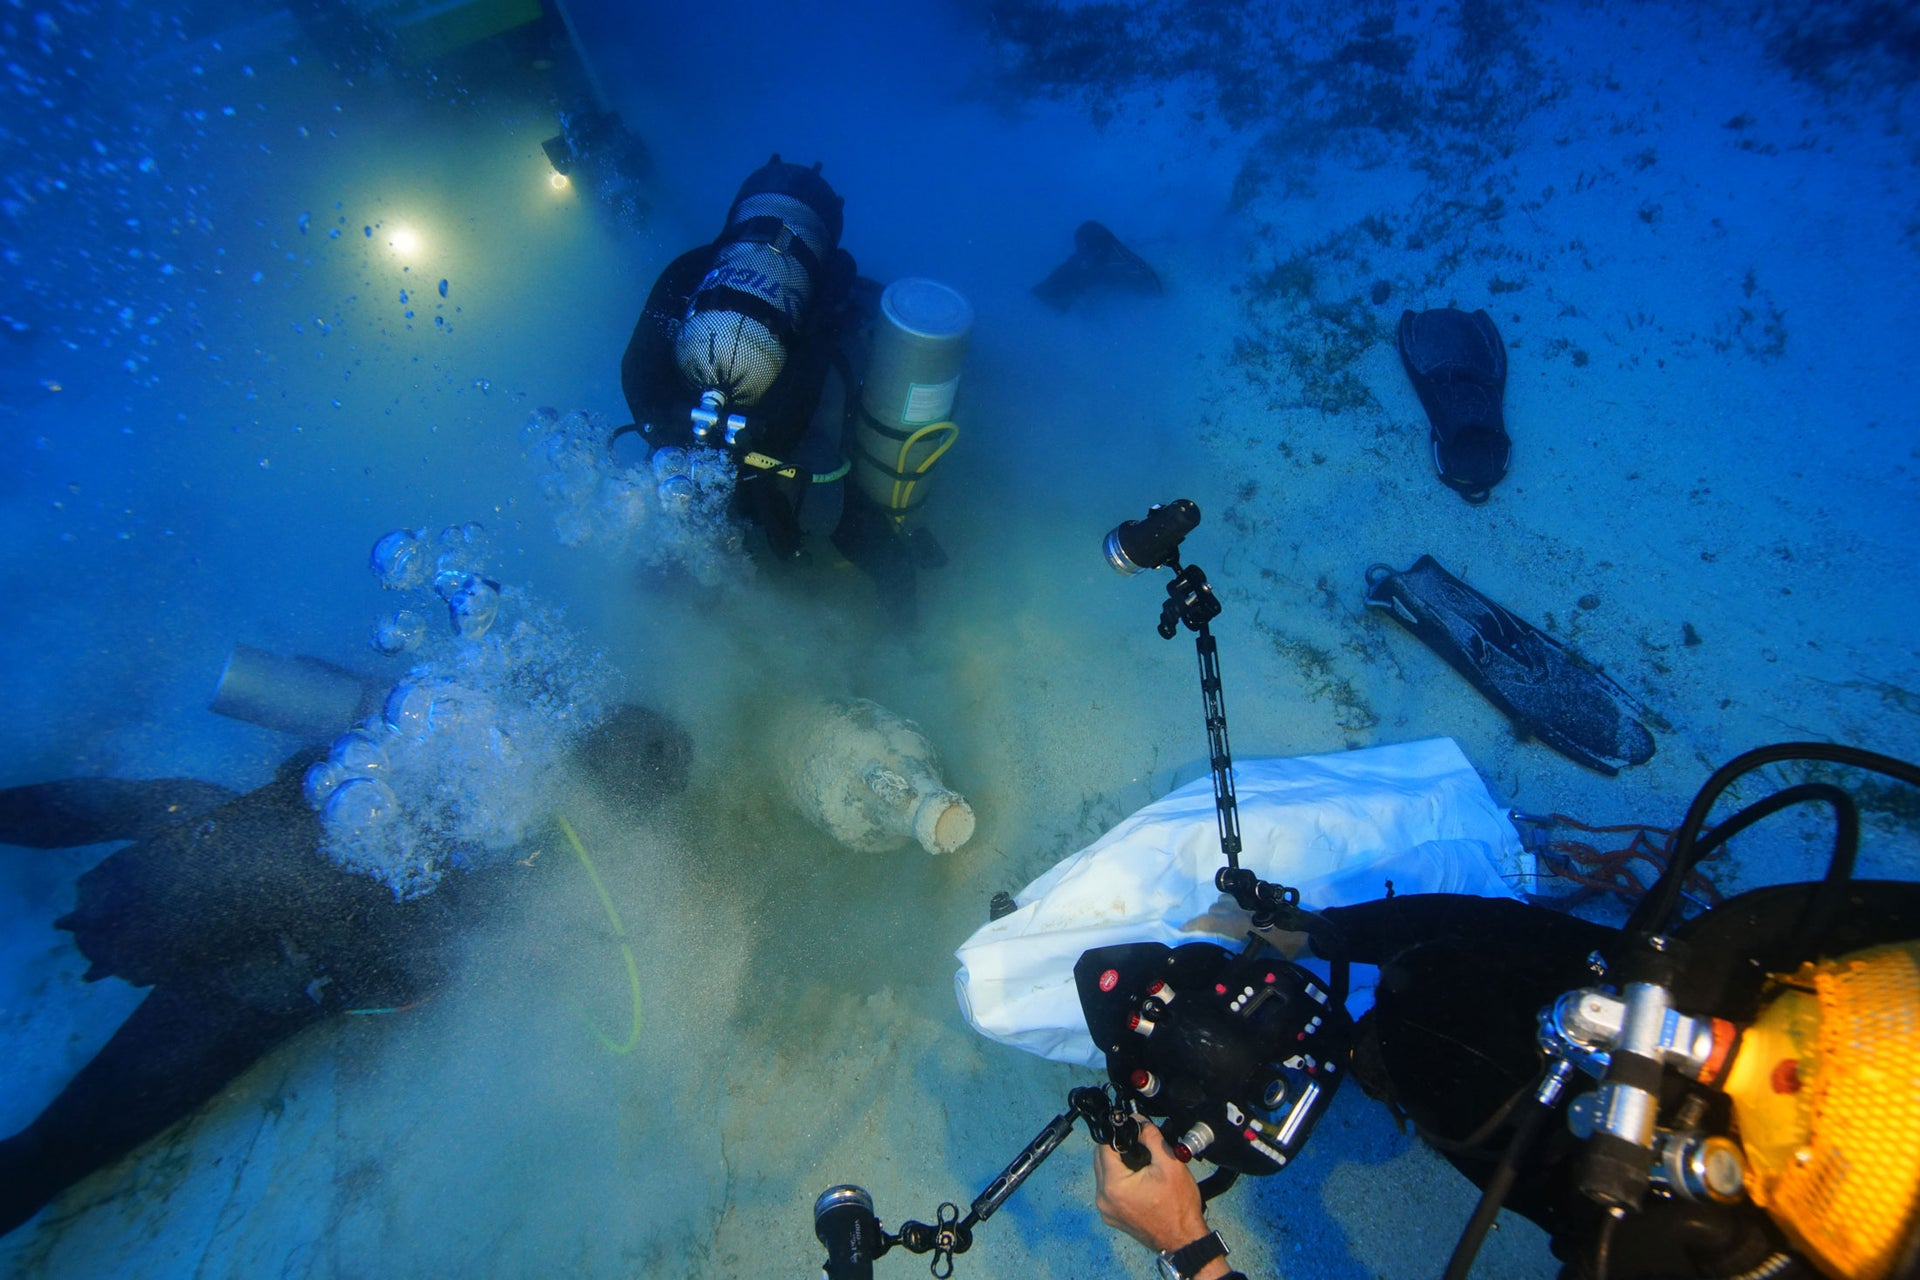 Archaeologists and the ROV robot clear sediment from a Roman North African amphora.